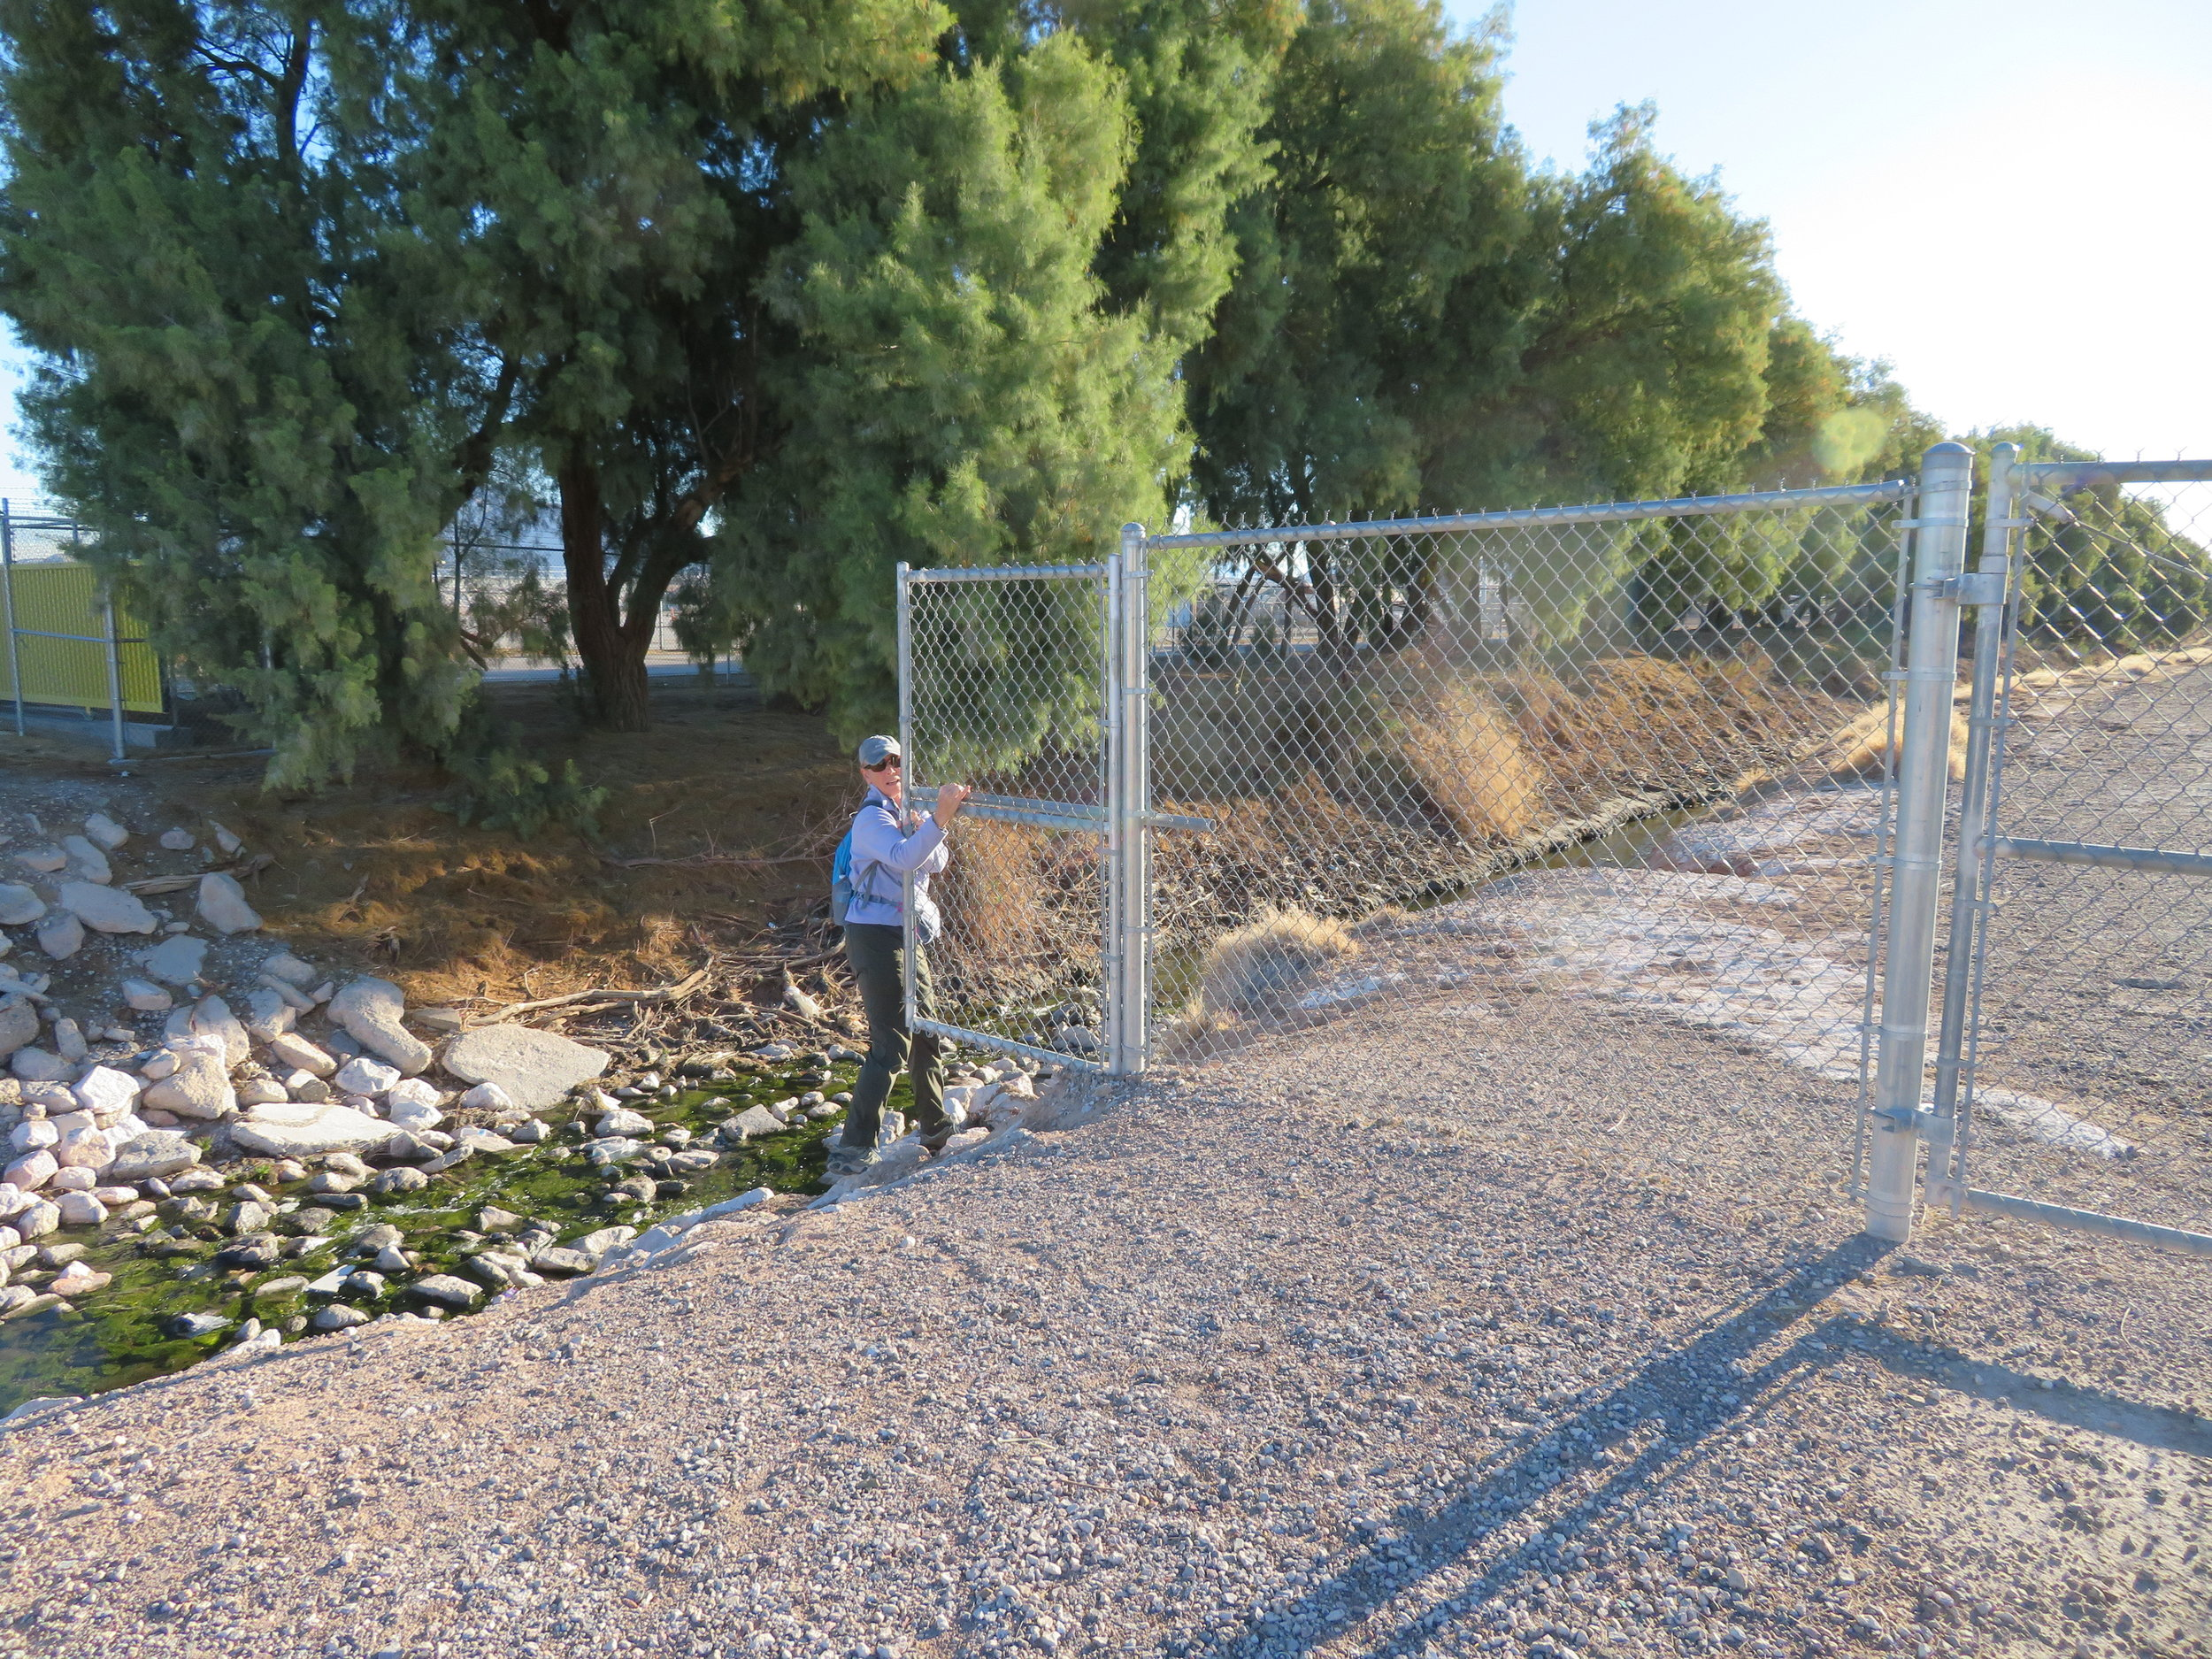 The padlocked gate with the No Trespassing sign might have been a subtle hint that we weren't supposed to pass through, but scofflaws that we are, we managed to walk on and avoid apprehension.